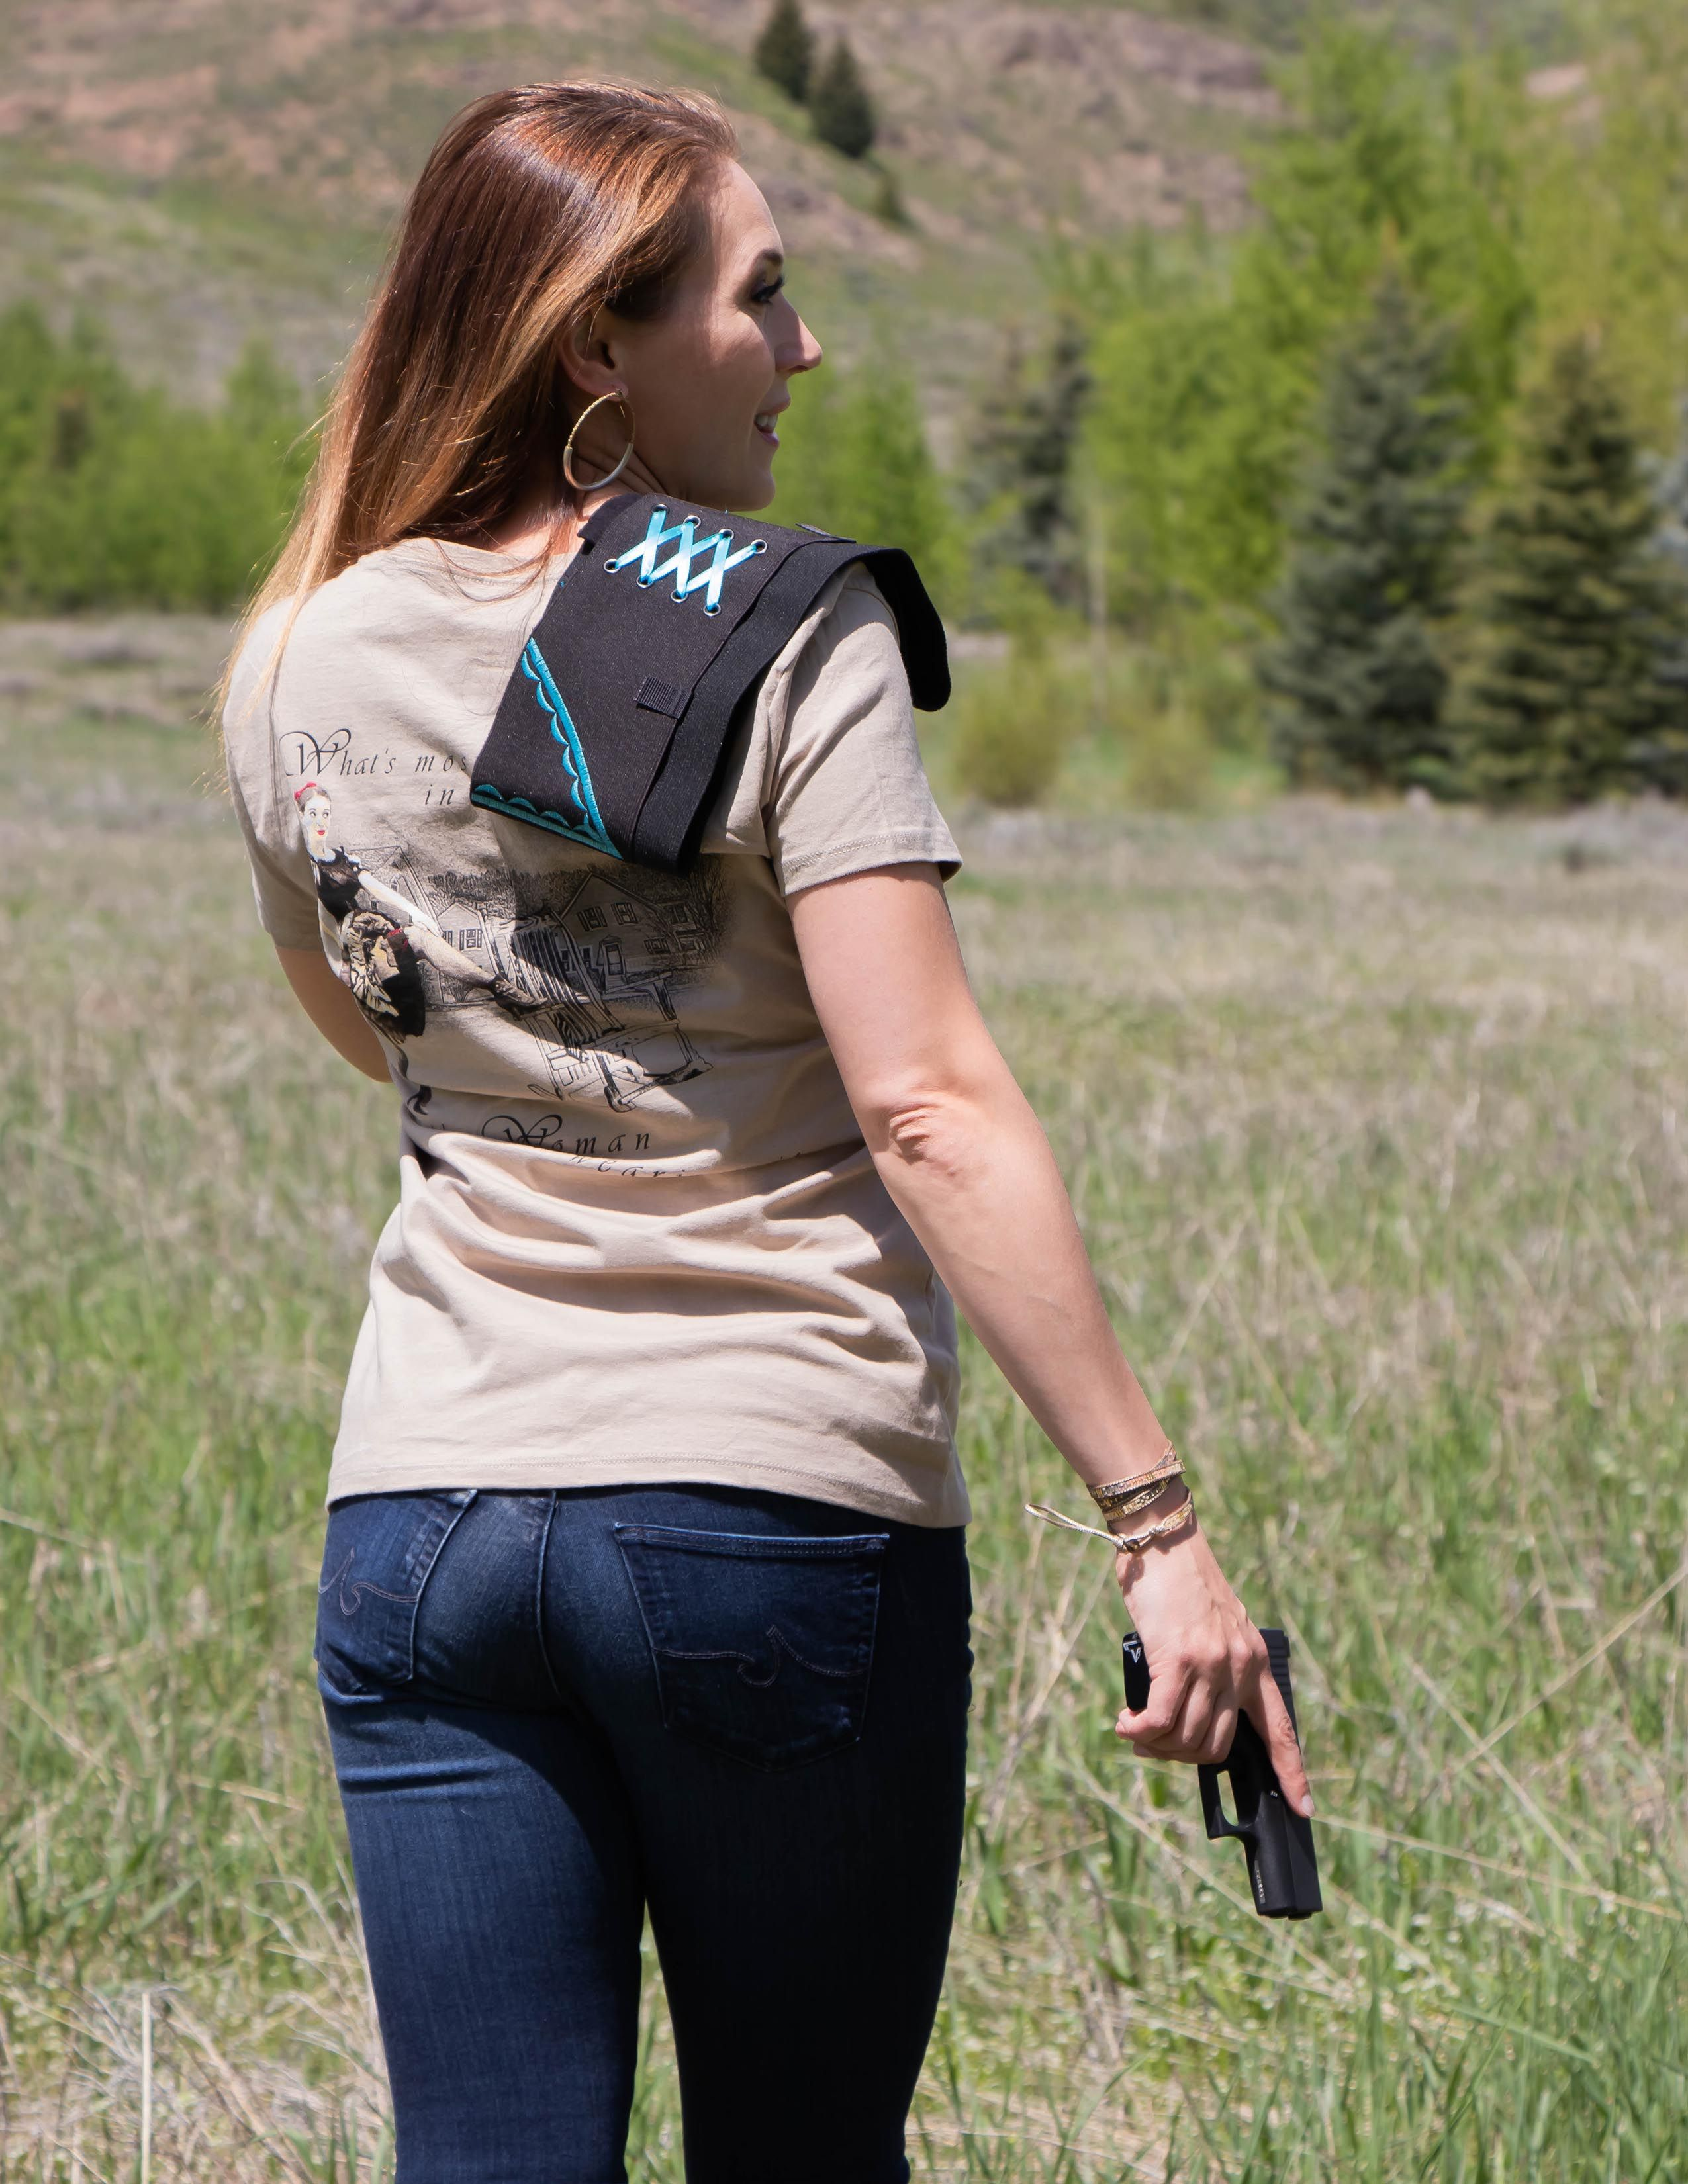 One of my favorite concealed-carry belly-band holsters: Can